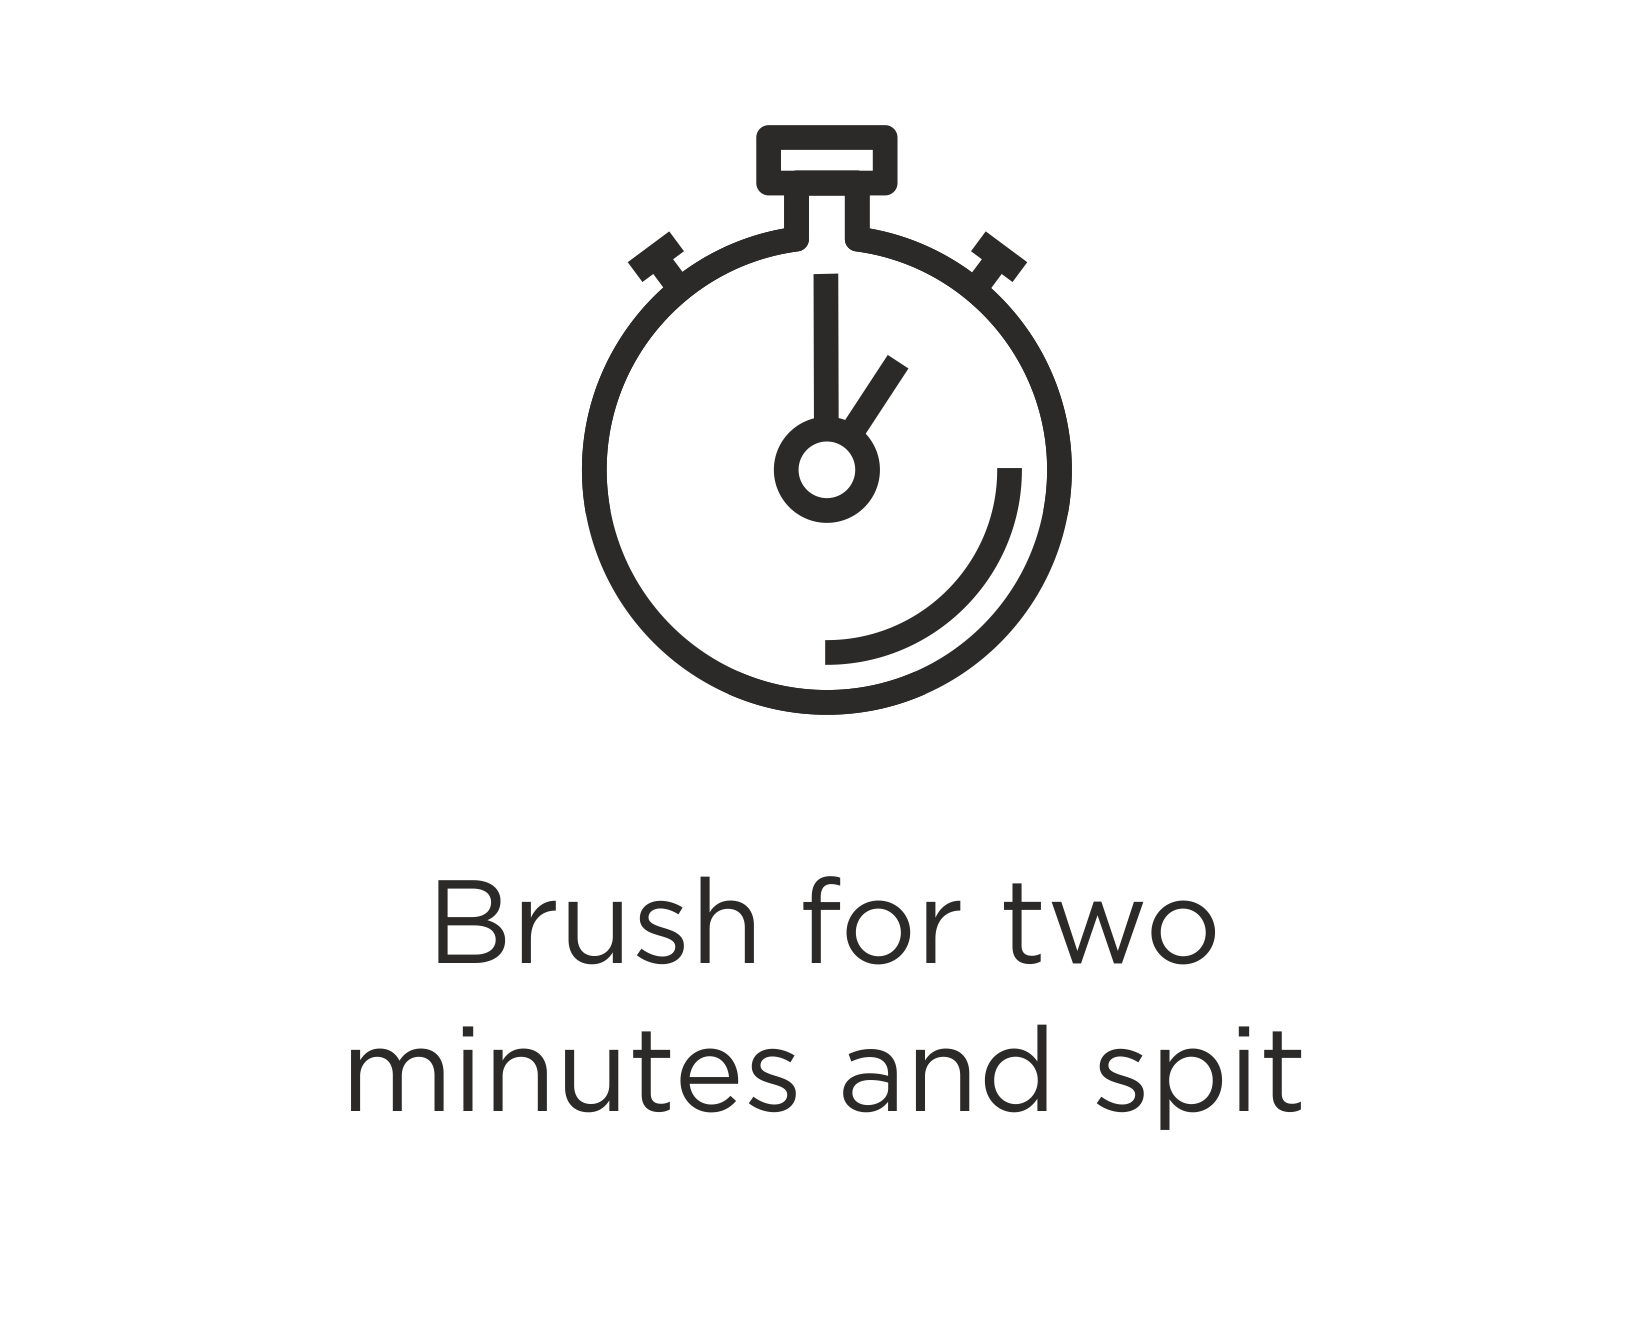 ICY BEAR Dental Care - Toothbrush Timer